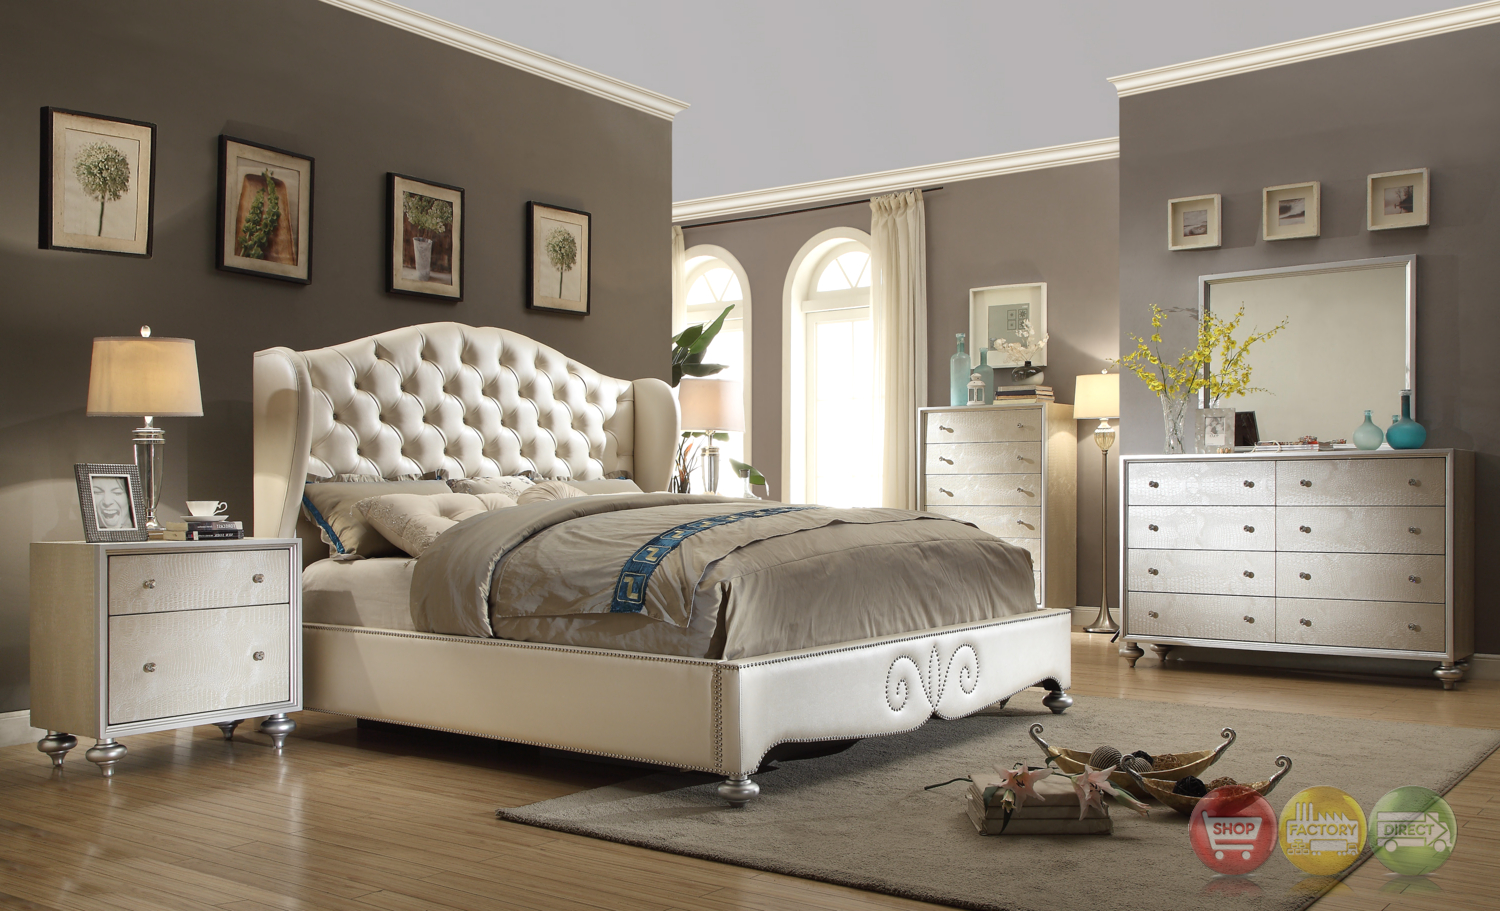 Glamorous pearl white button tufted wing back bed faux for I need bedroom furniture